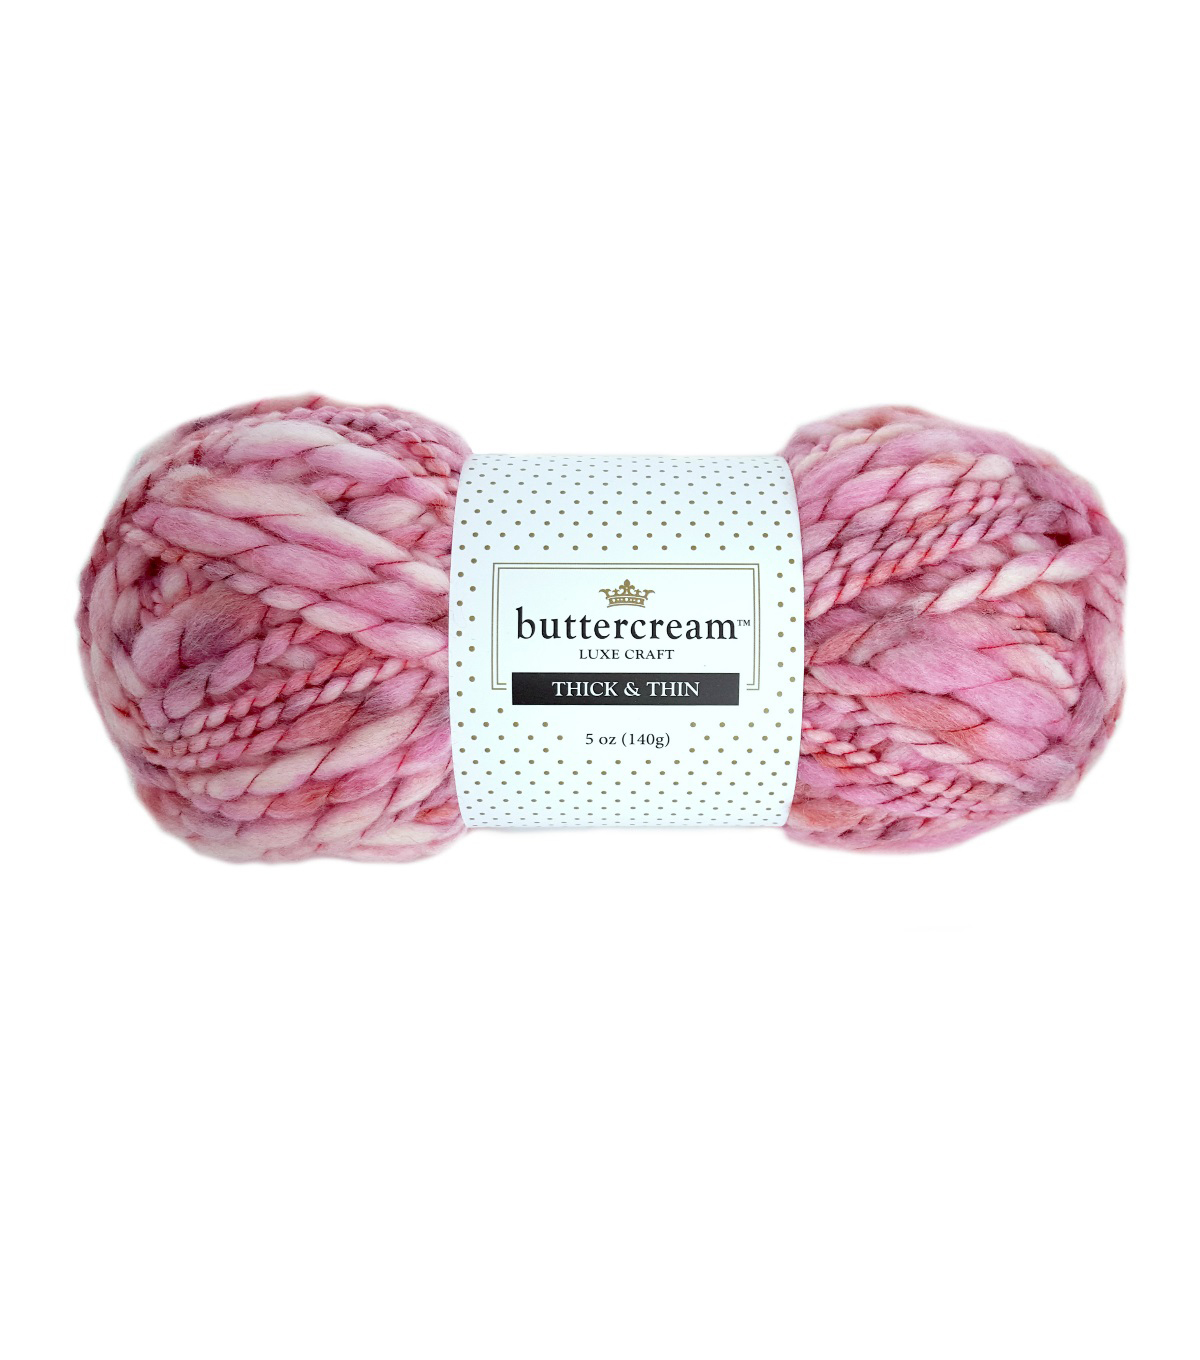 Buttercream™ Luxe Craft Thick & Thin Yarn